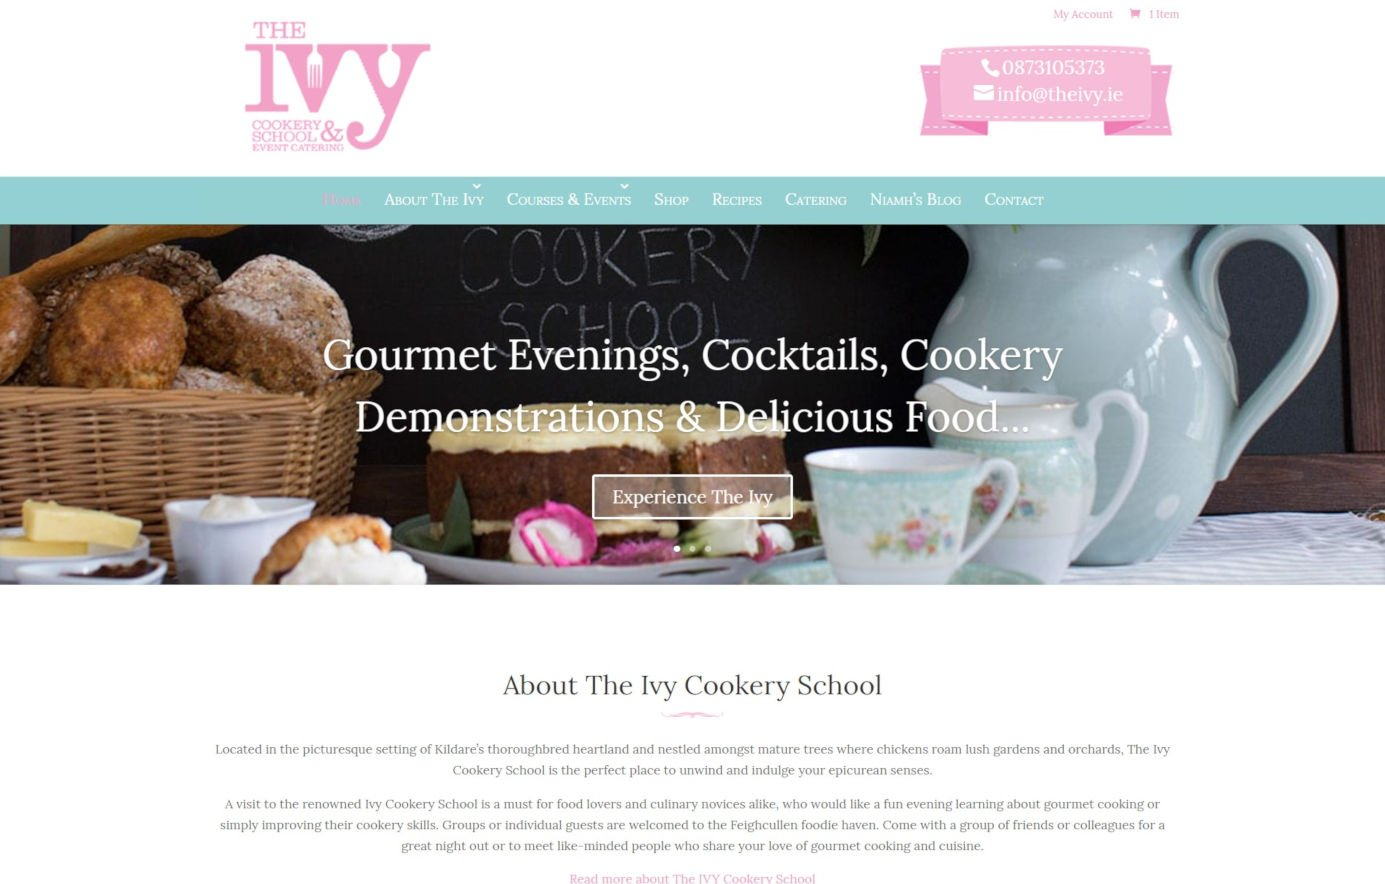 The IVY Cookery School - Services Page Featured